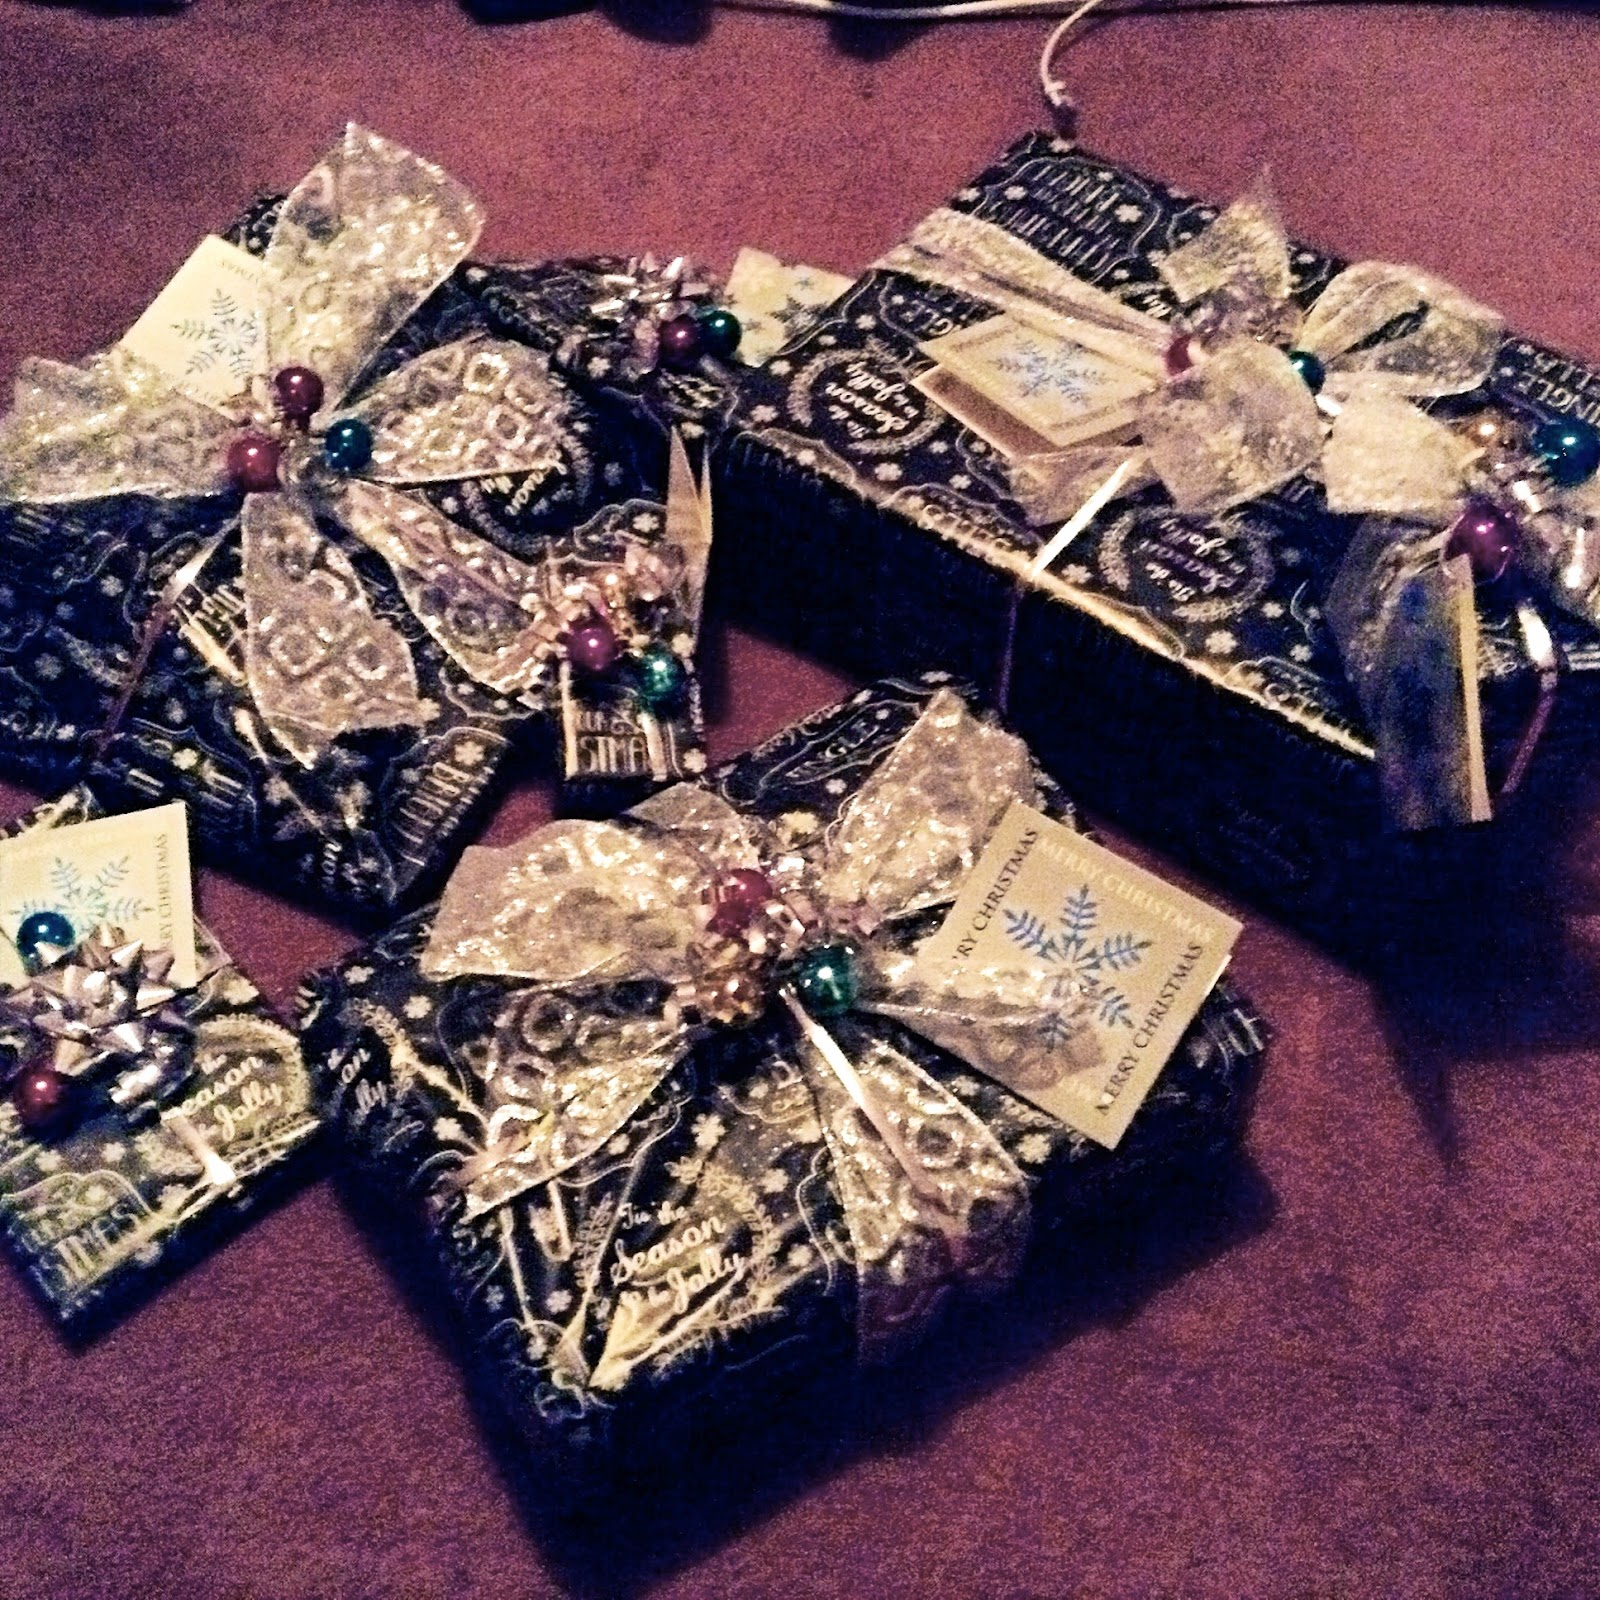 Presents wrapped in black & white paper with silver ribbon & baubles